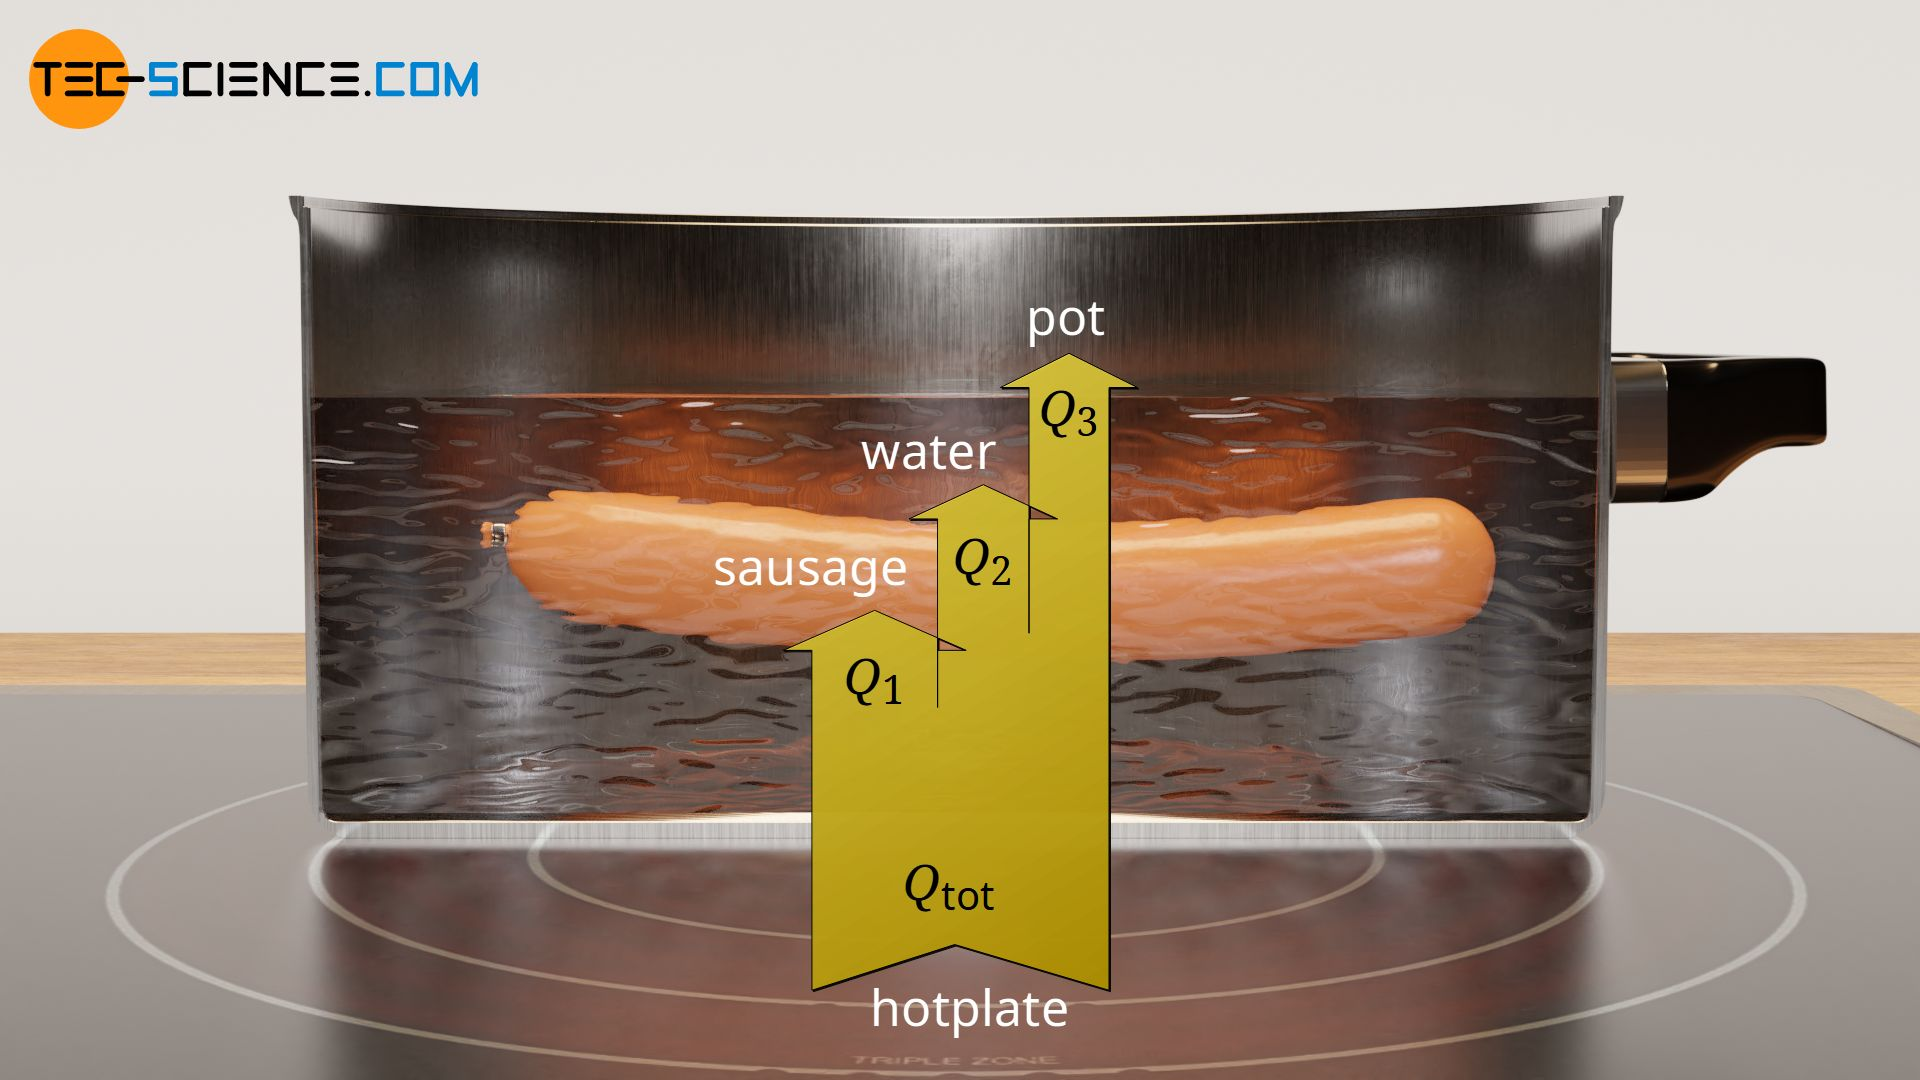 Energy flow diagram of heating a pot of water with a sausage in it